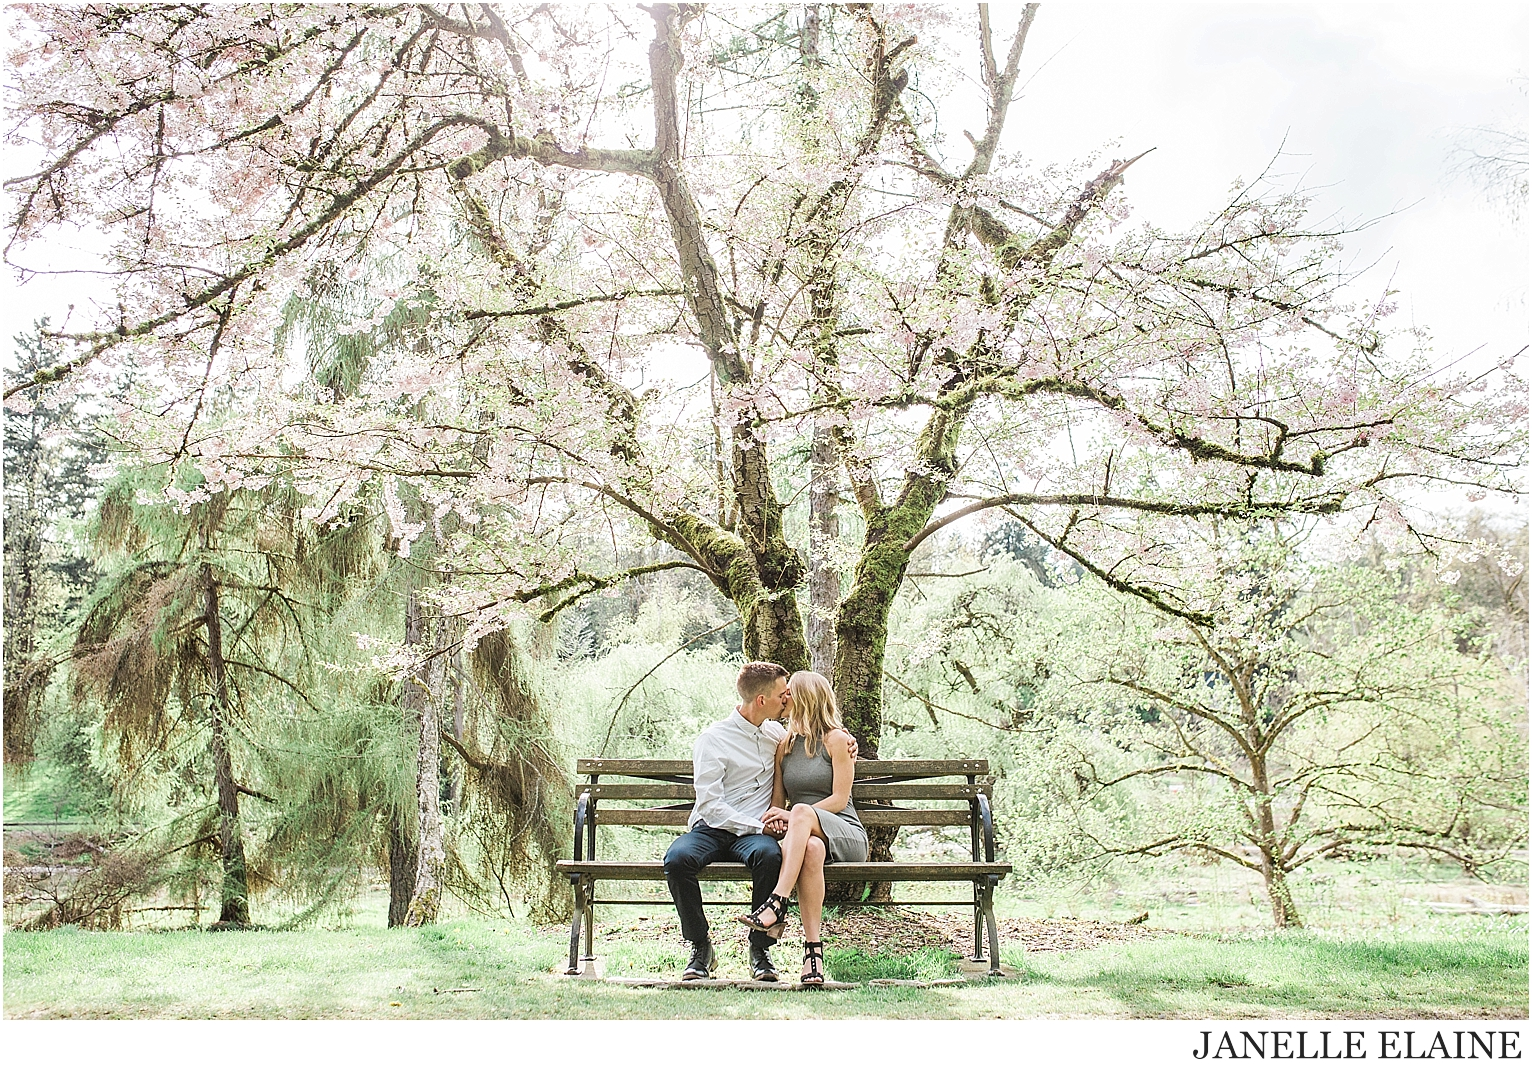 tricia and nate engagement photos-janelle elaine photography-56.jpg